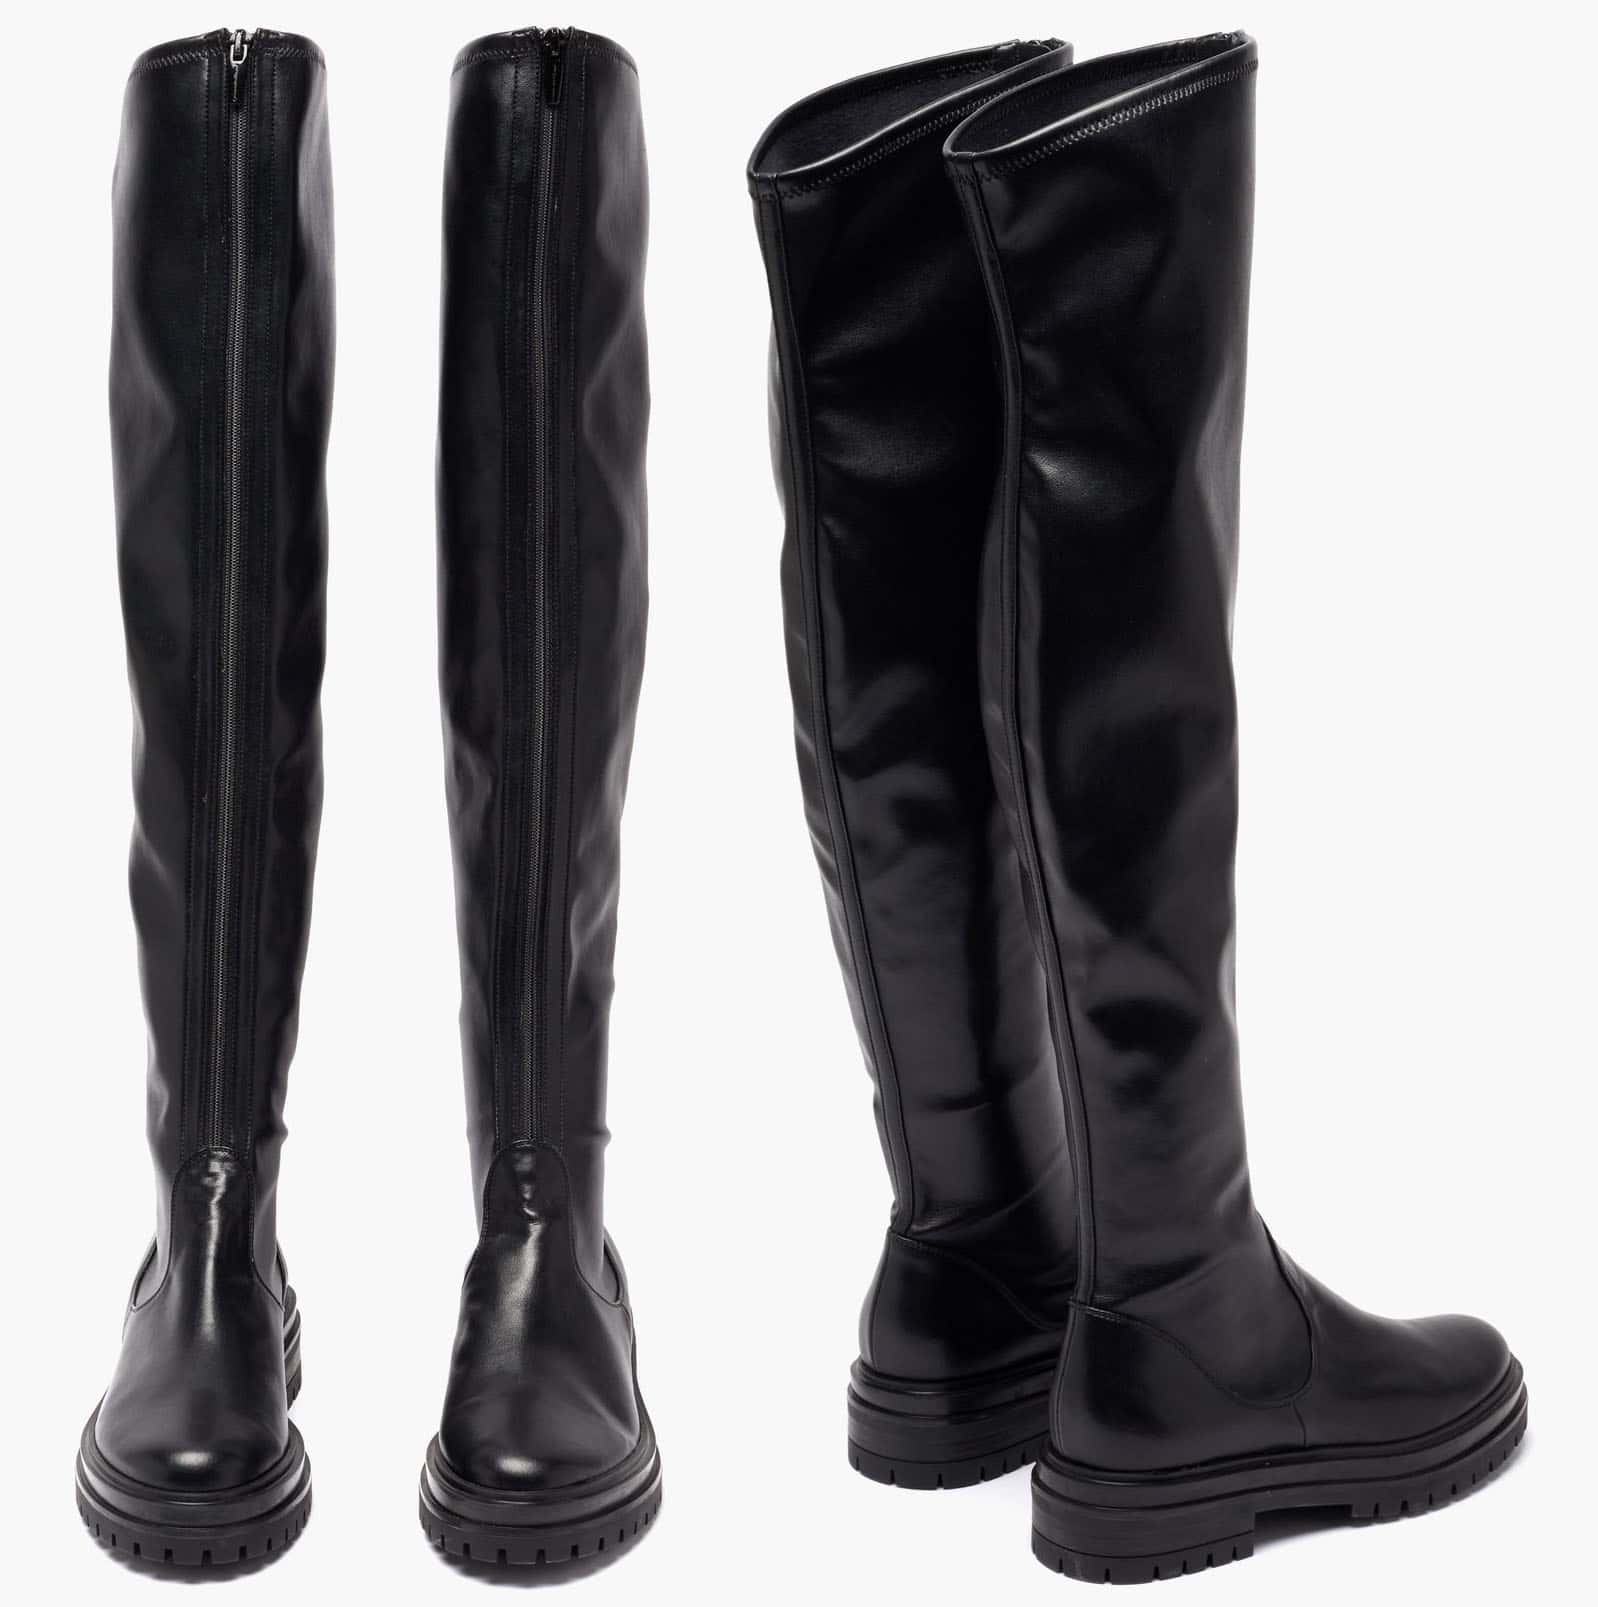 Gianvito Rossi's black leather Marsden over-the-knee boots are set on chunky ridged rubber soles